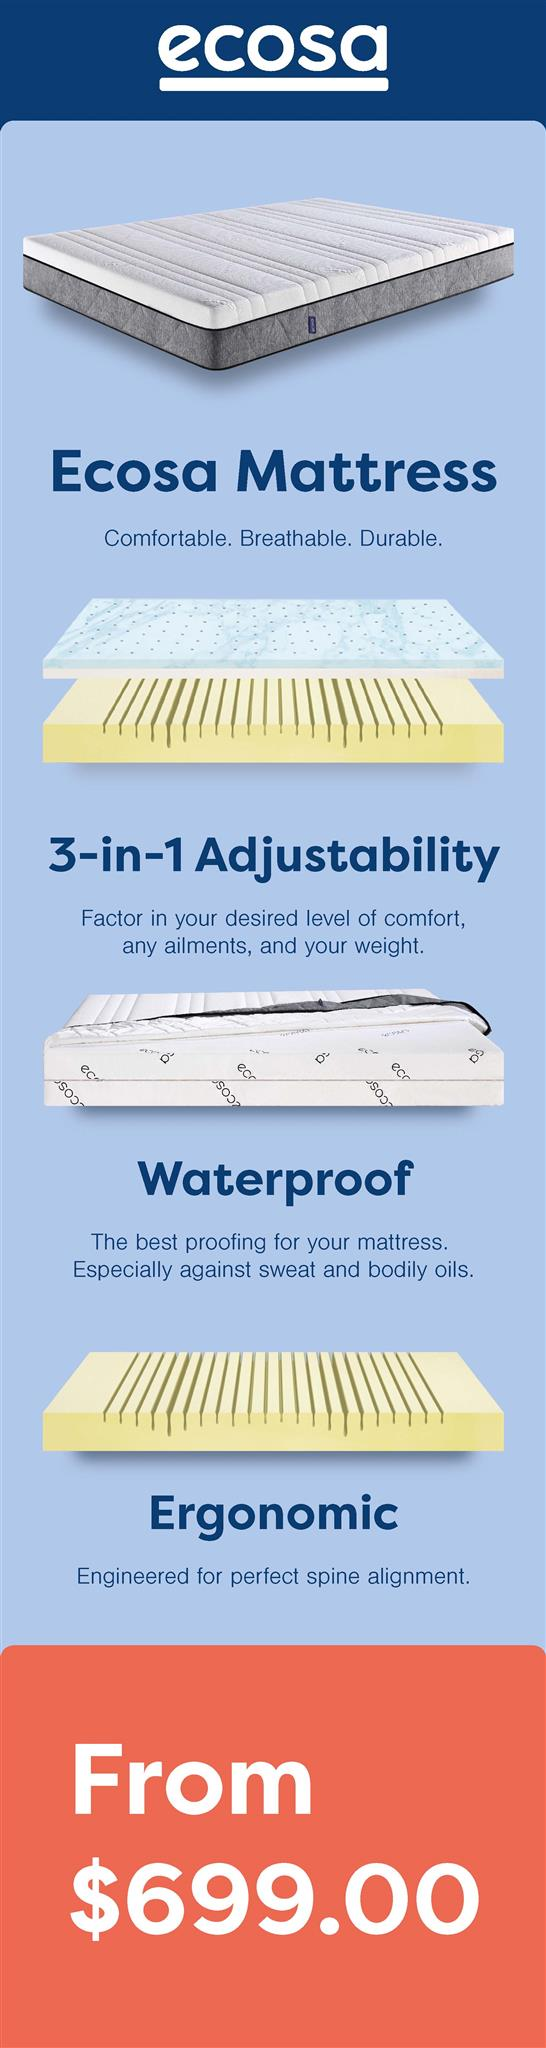 ecosa mattress bed base